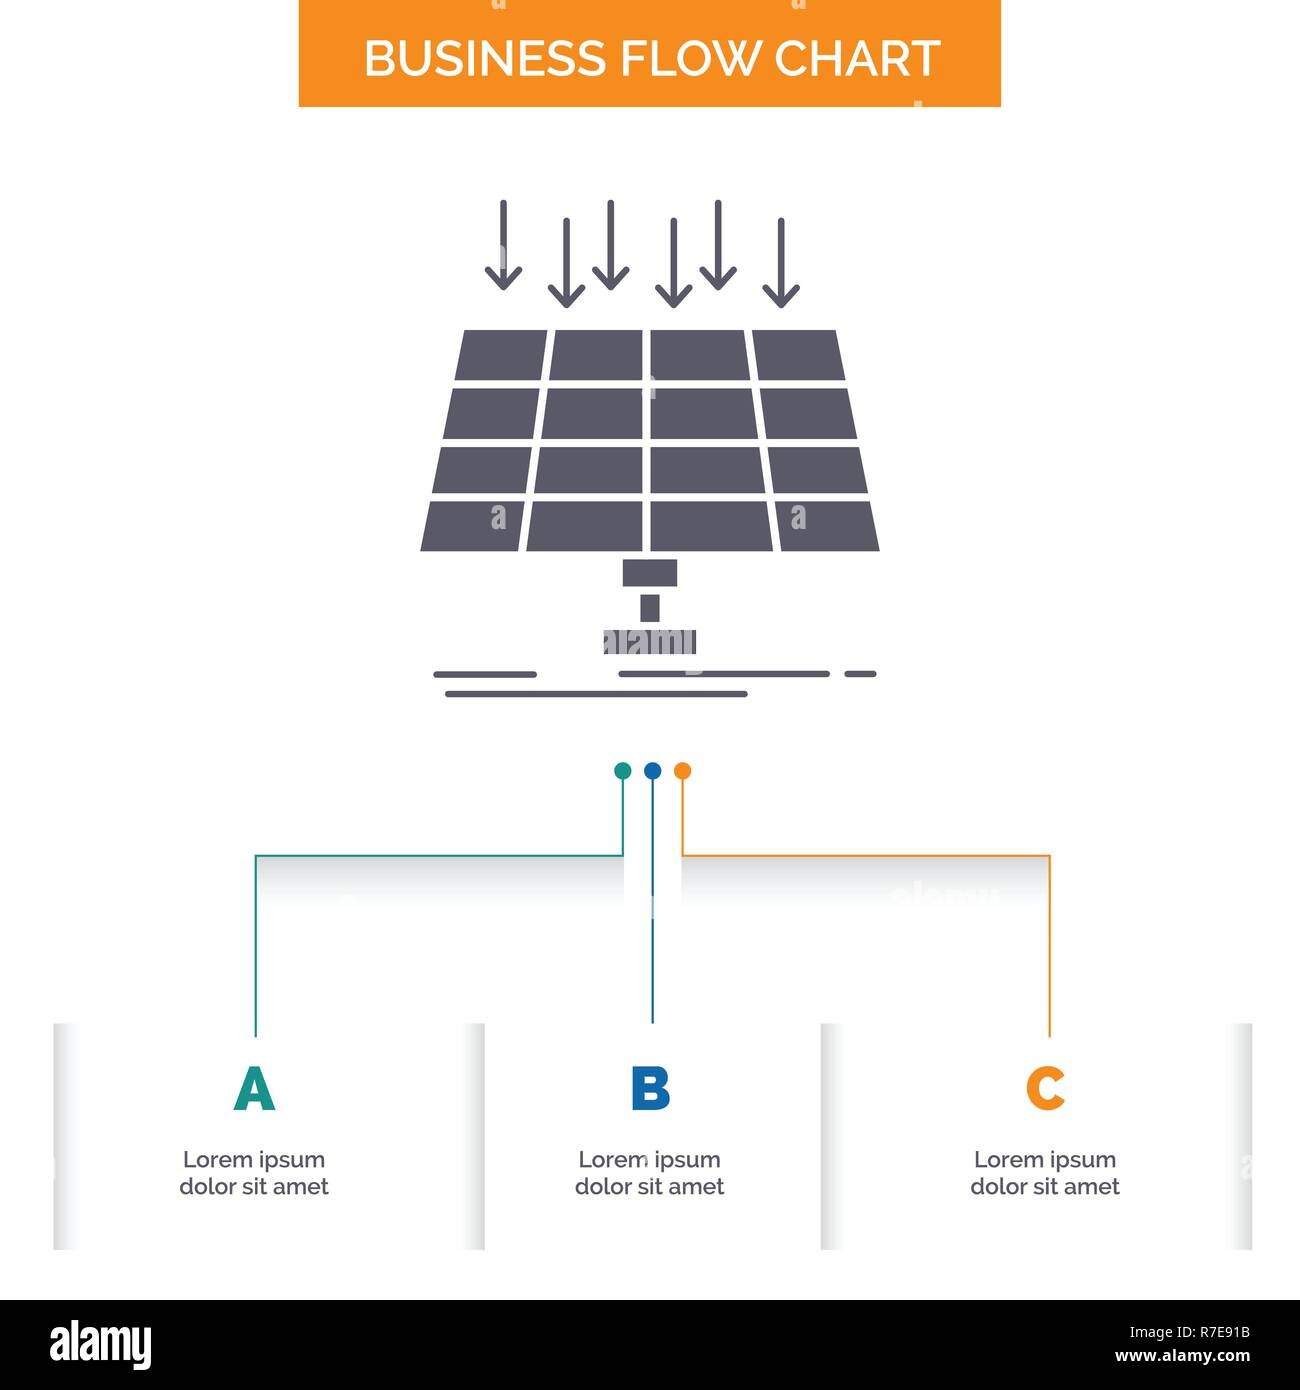 solar panel energy technology smart city business flow chart design with 3 steps glyph icon for presentation background template place for text R7E91B solar, panel, energy, technology, smart city business flow chart